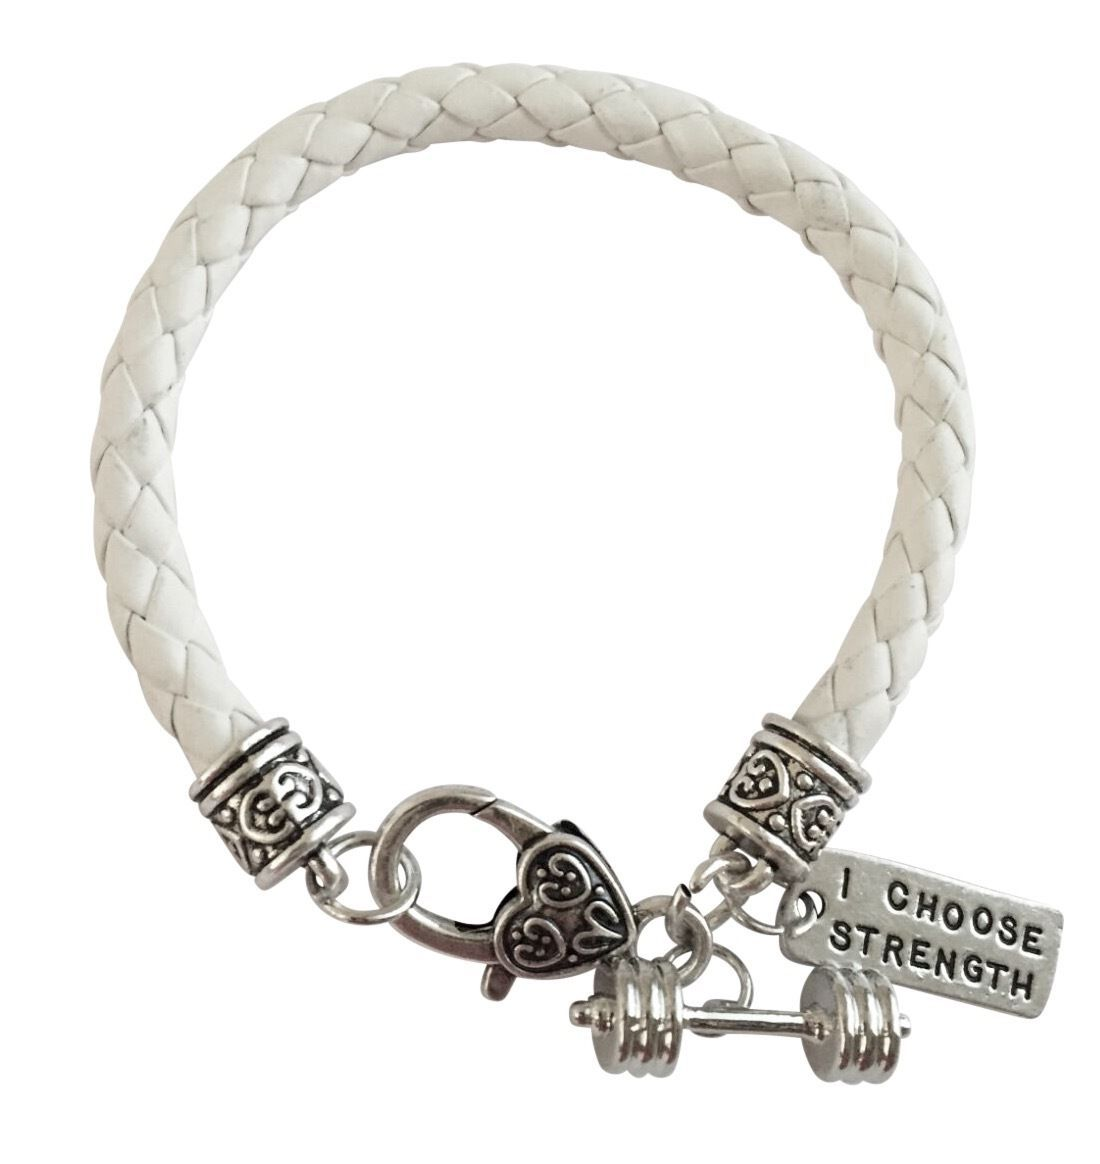 White Crossfit Training Crossfit Fitness Dumbbell Braided Leather Charm Bracelet